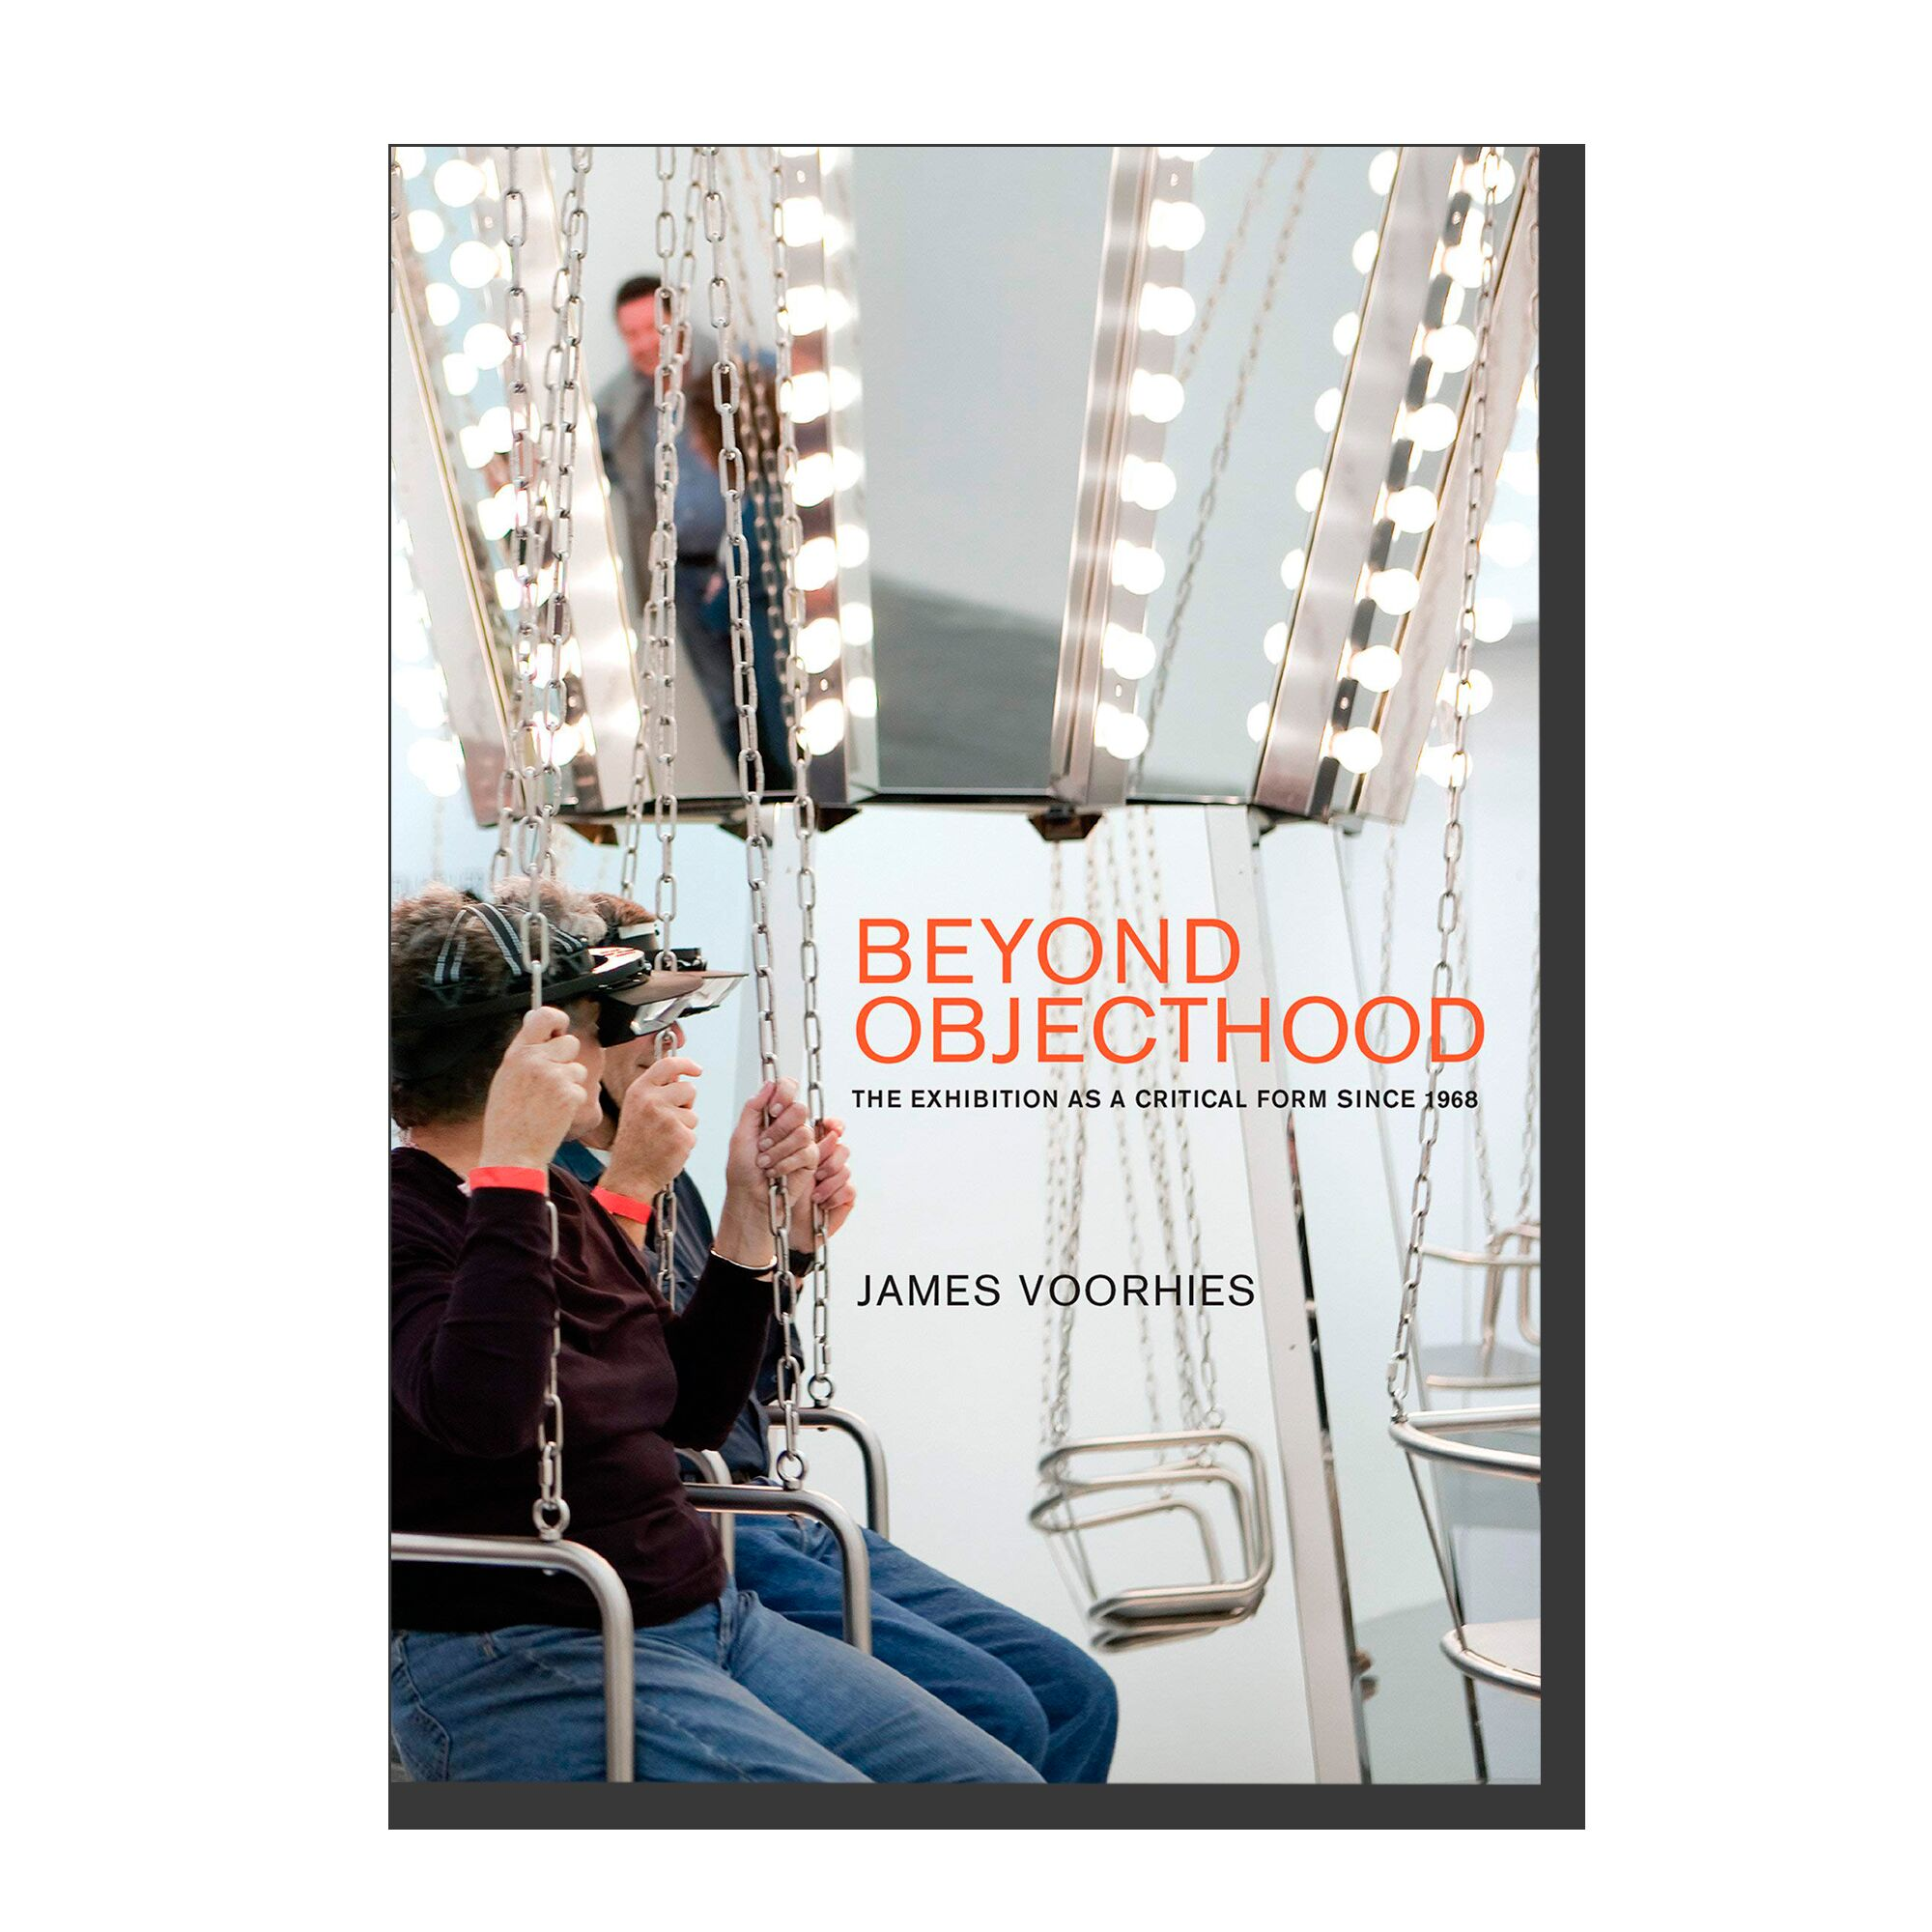 Beyond Objecthood: The Exhibition as a Critical Form Since 1968